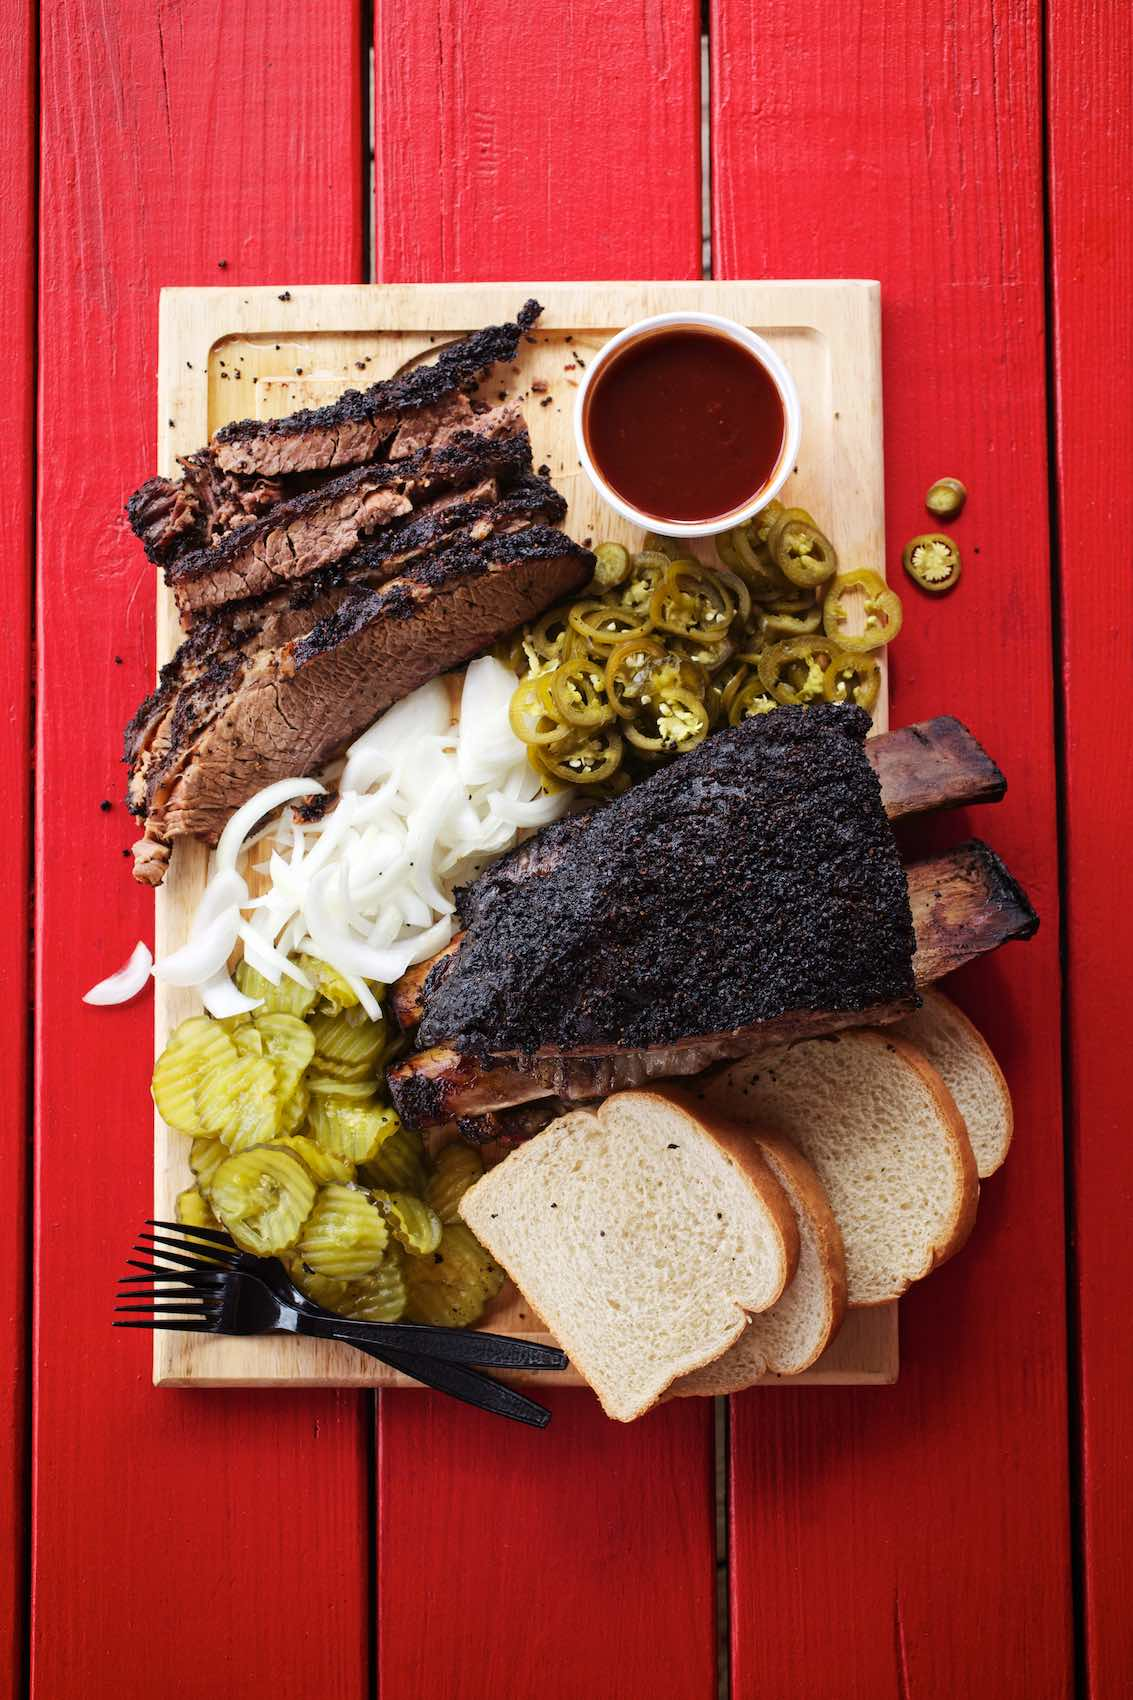 Jody Horton Photography - Barbecue spread on cutting board on red picnic table.